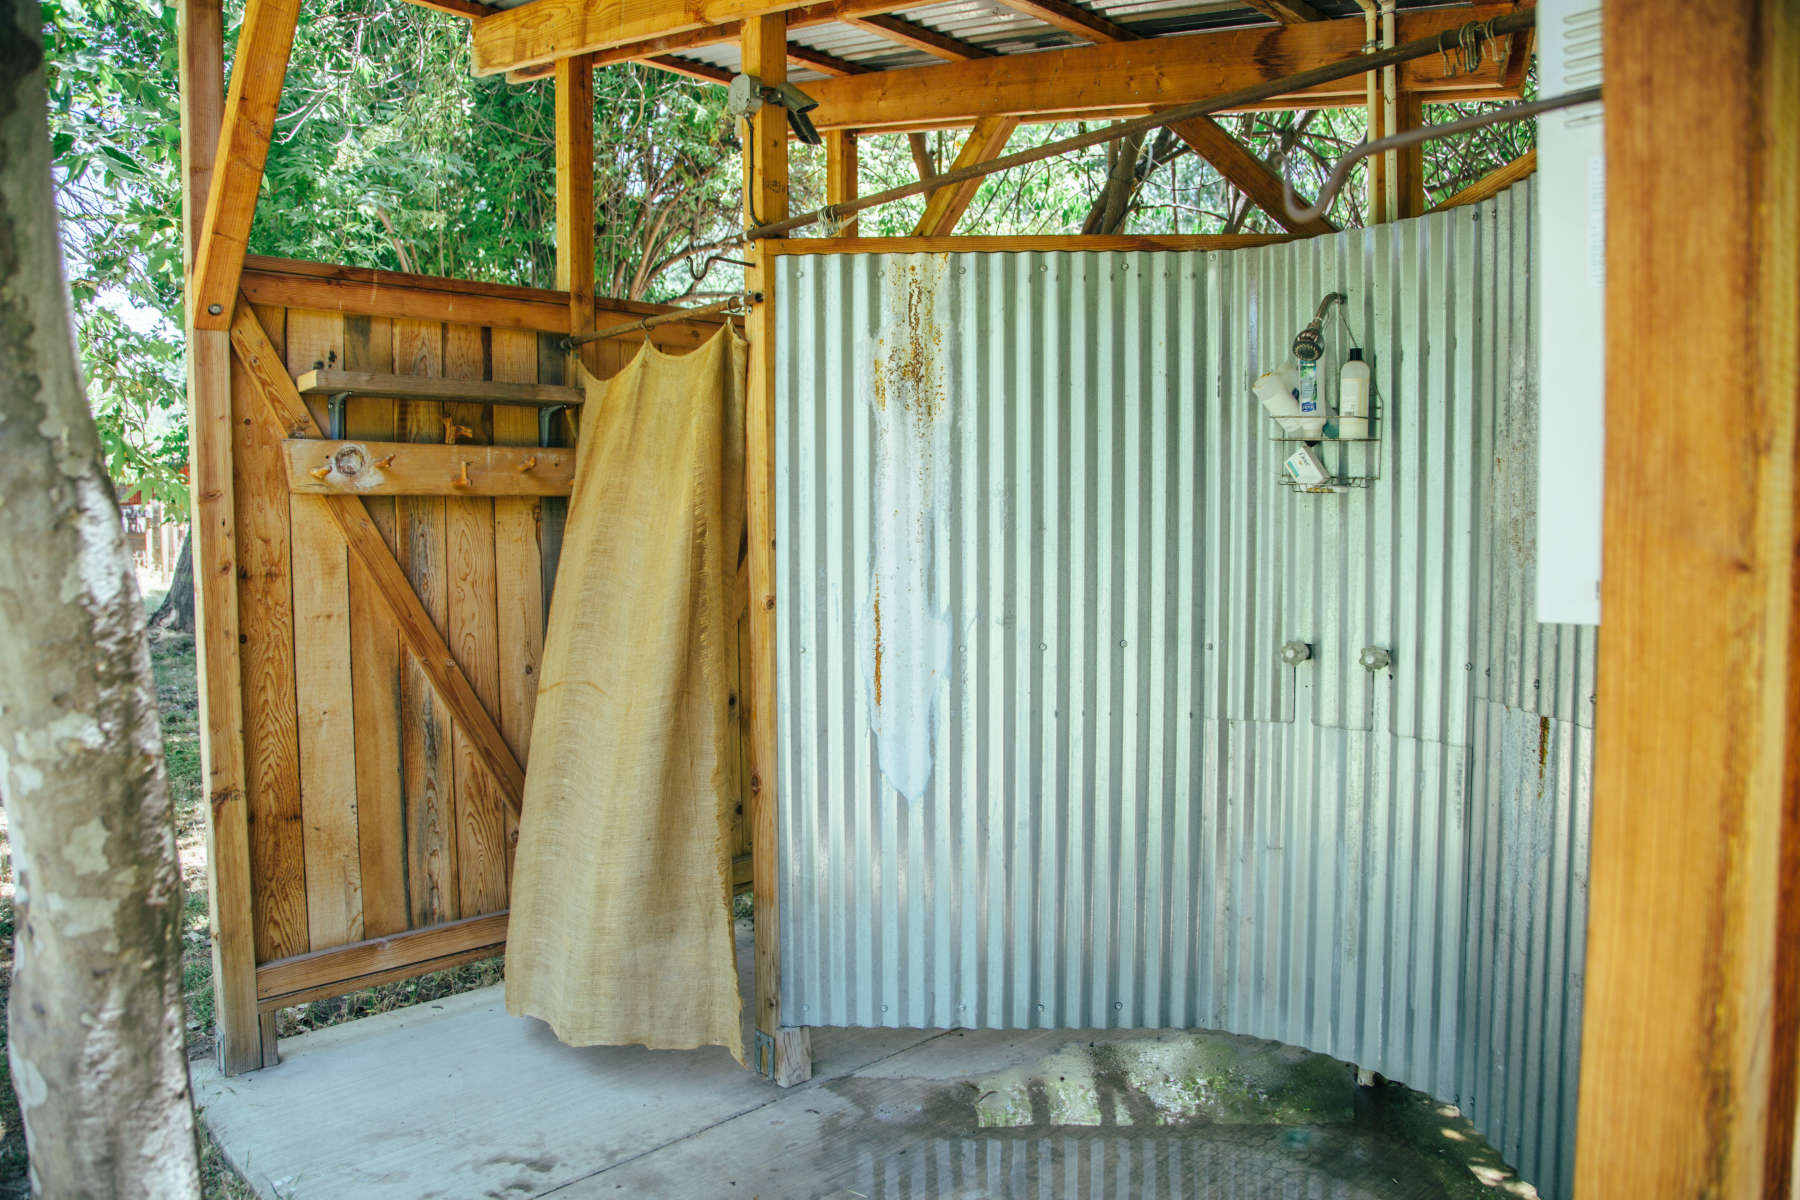 Sycamore Arch, 722 Acre Ranch Preserve, CA: 35 Hipcamper reviews and ...